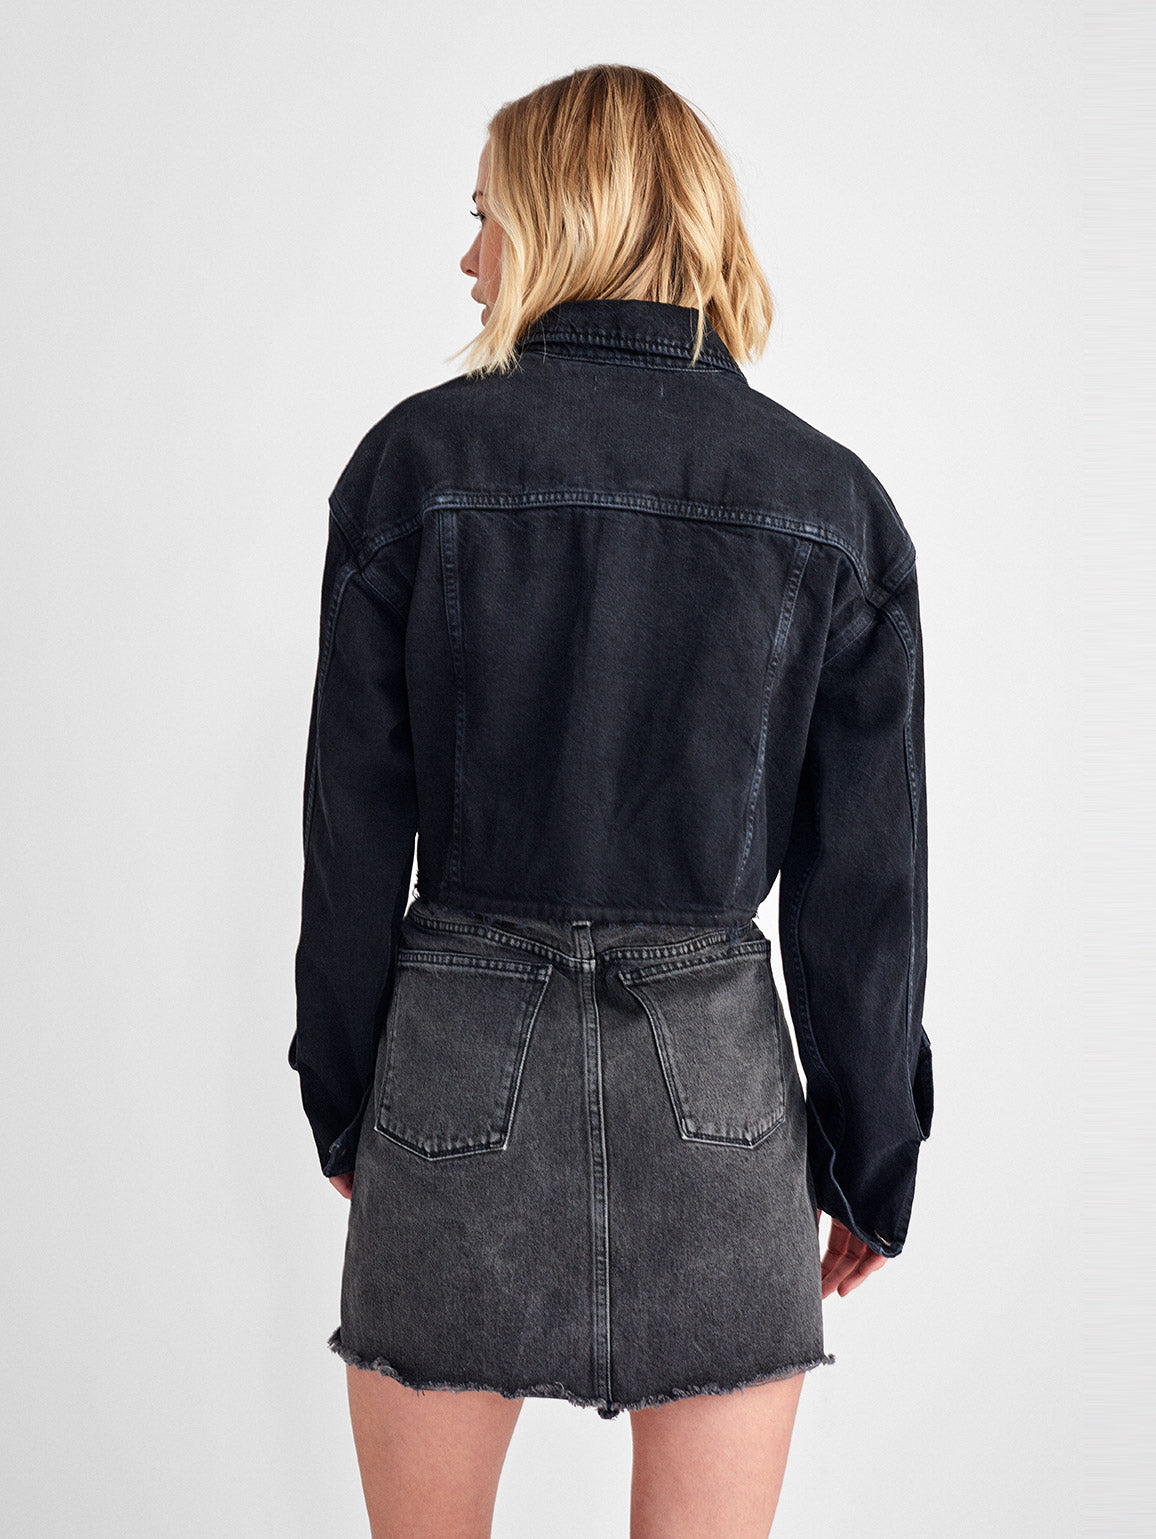 Jacket - Annie Cropped Jacket | Blackburn - DL1961